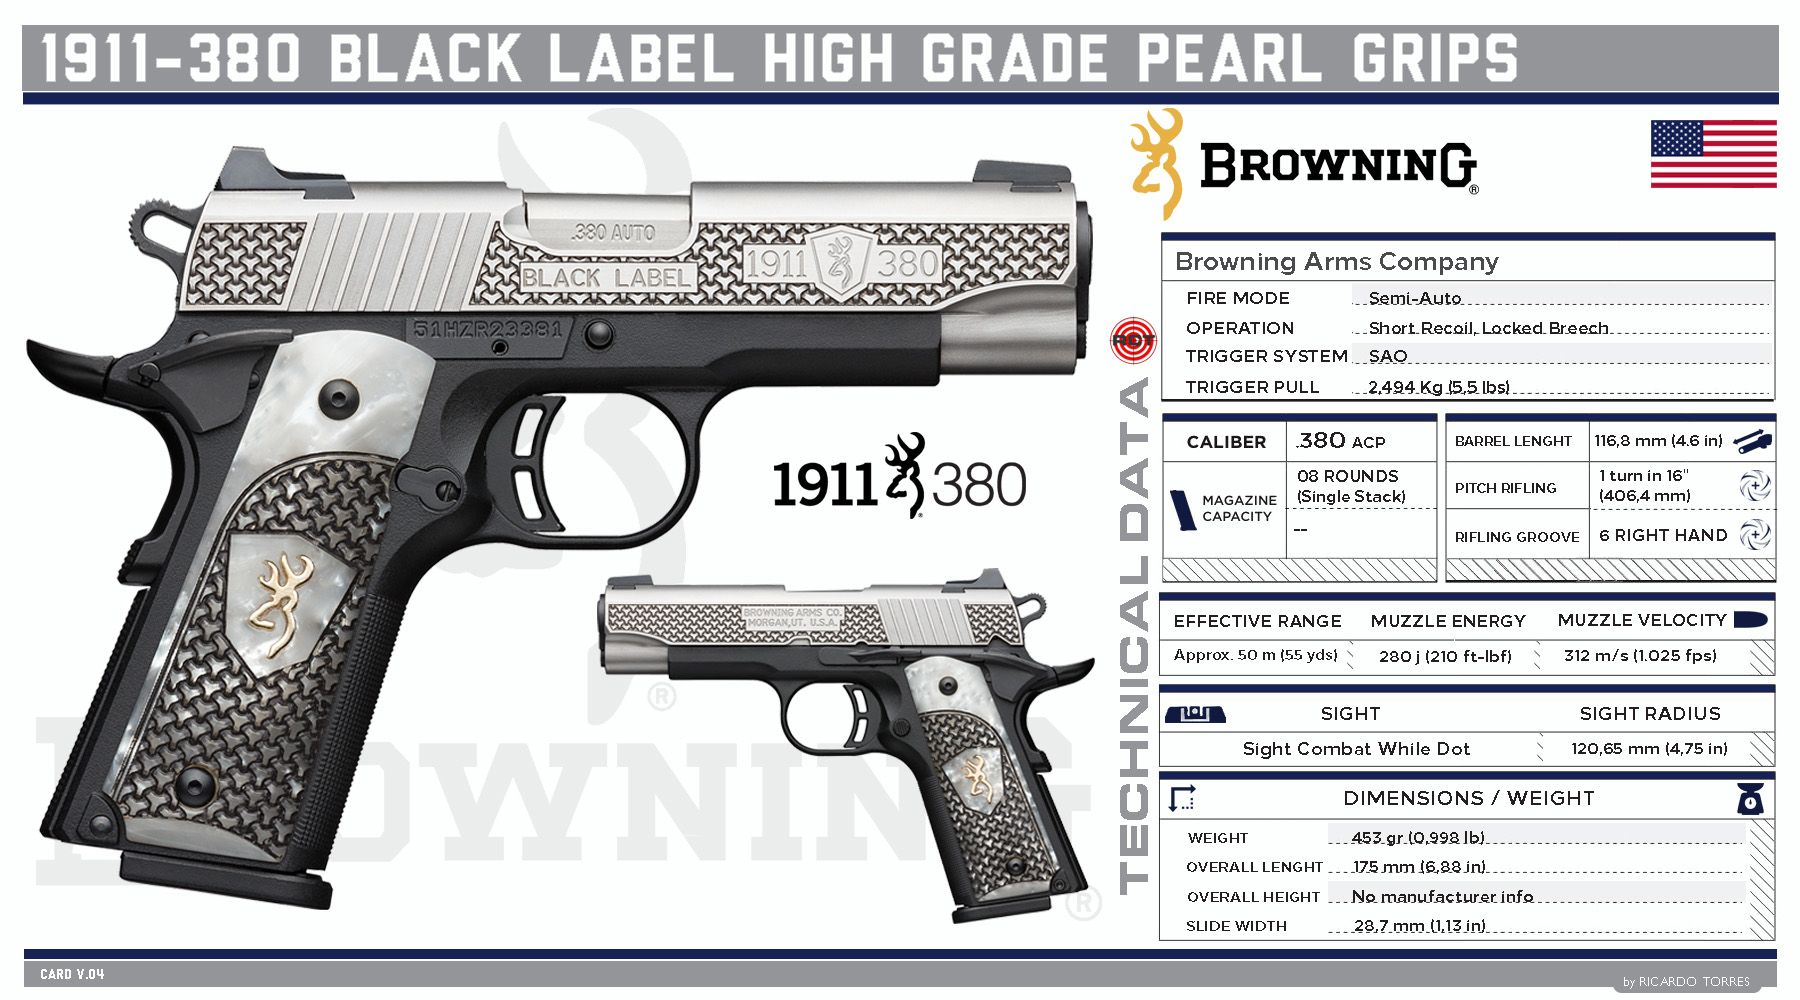 Browning Arms Company - 1911-380 Black Label High Grade